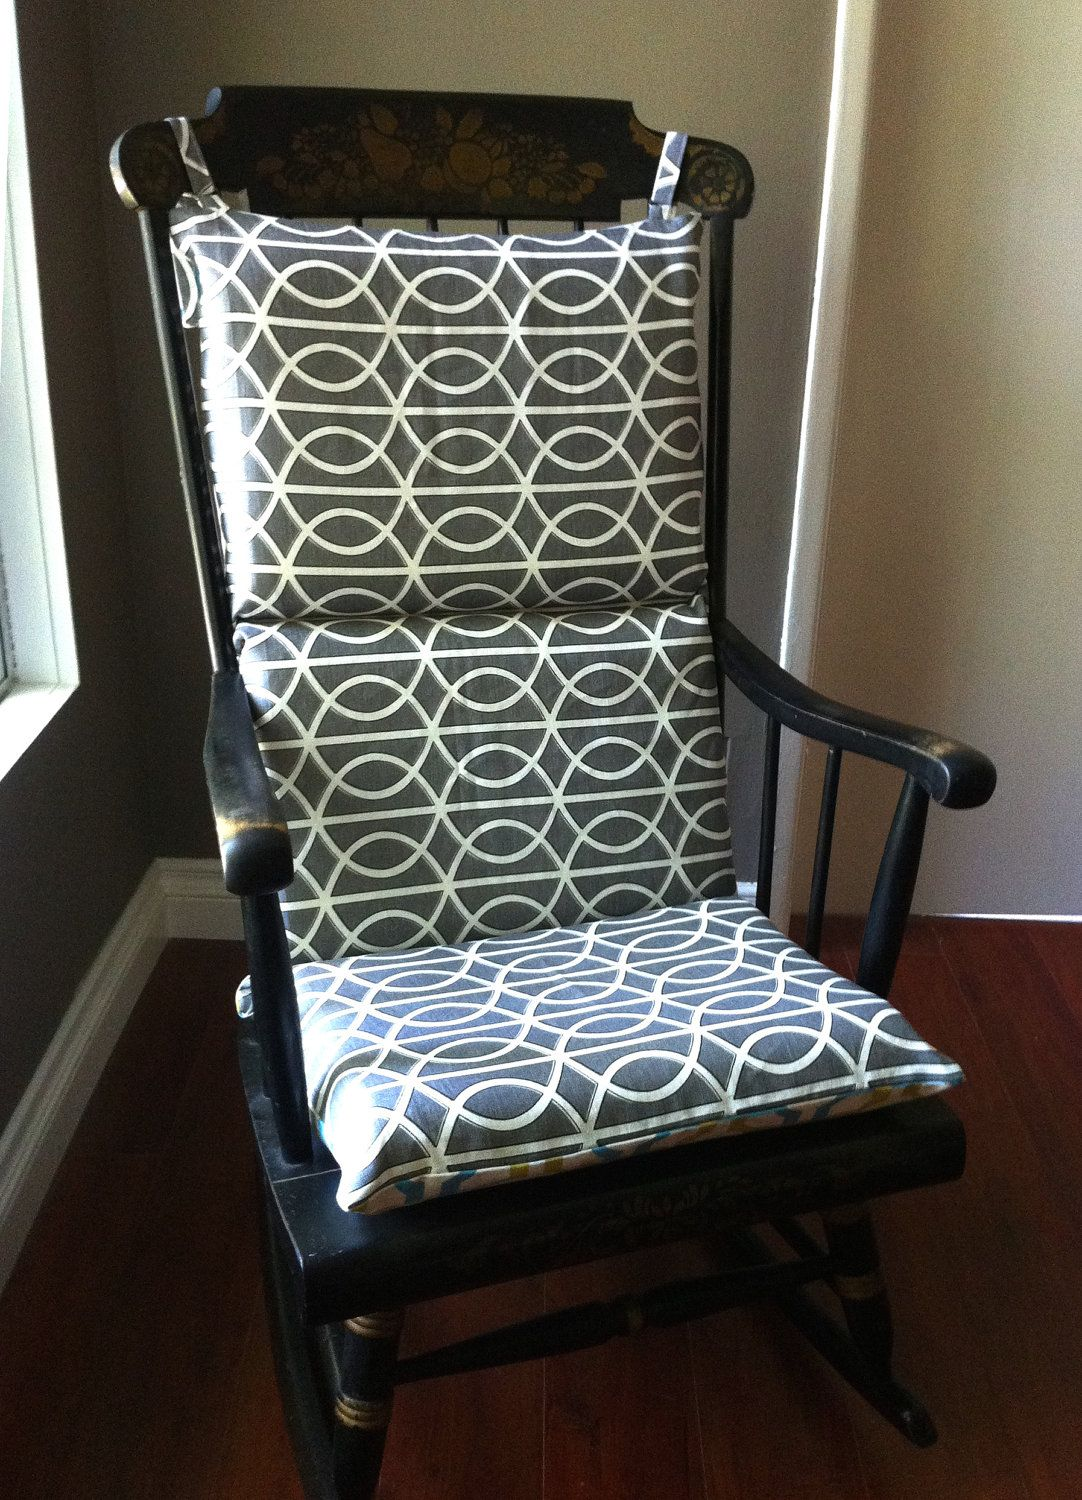 Rocking Chair Covers Rocking Chair Cover Looks Double Sided And Easier Pattern To Zip